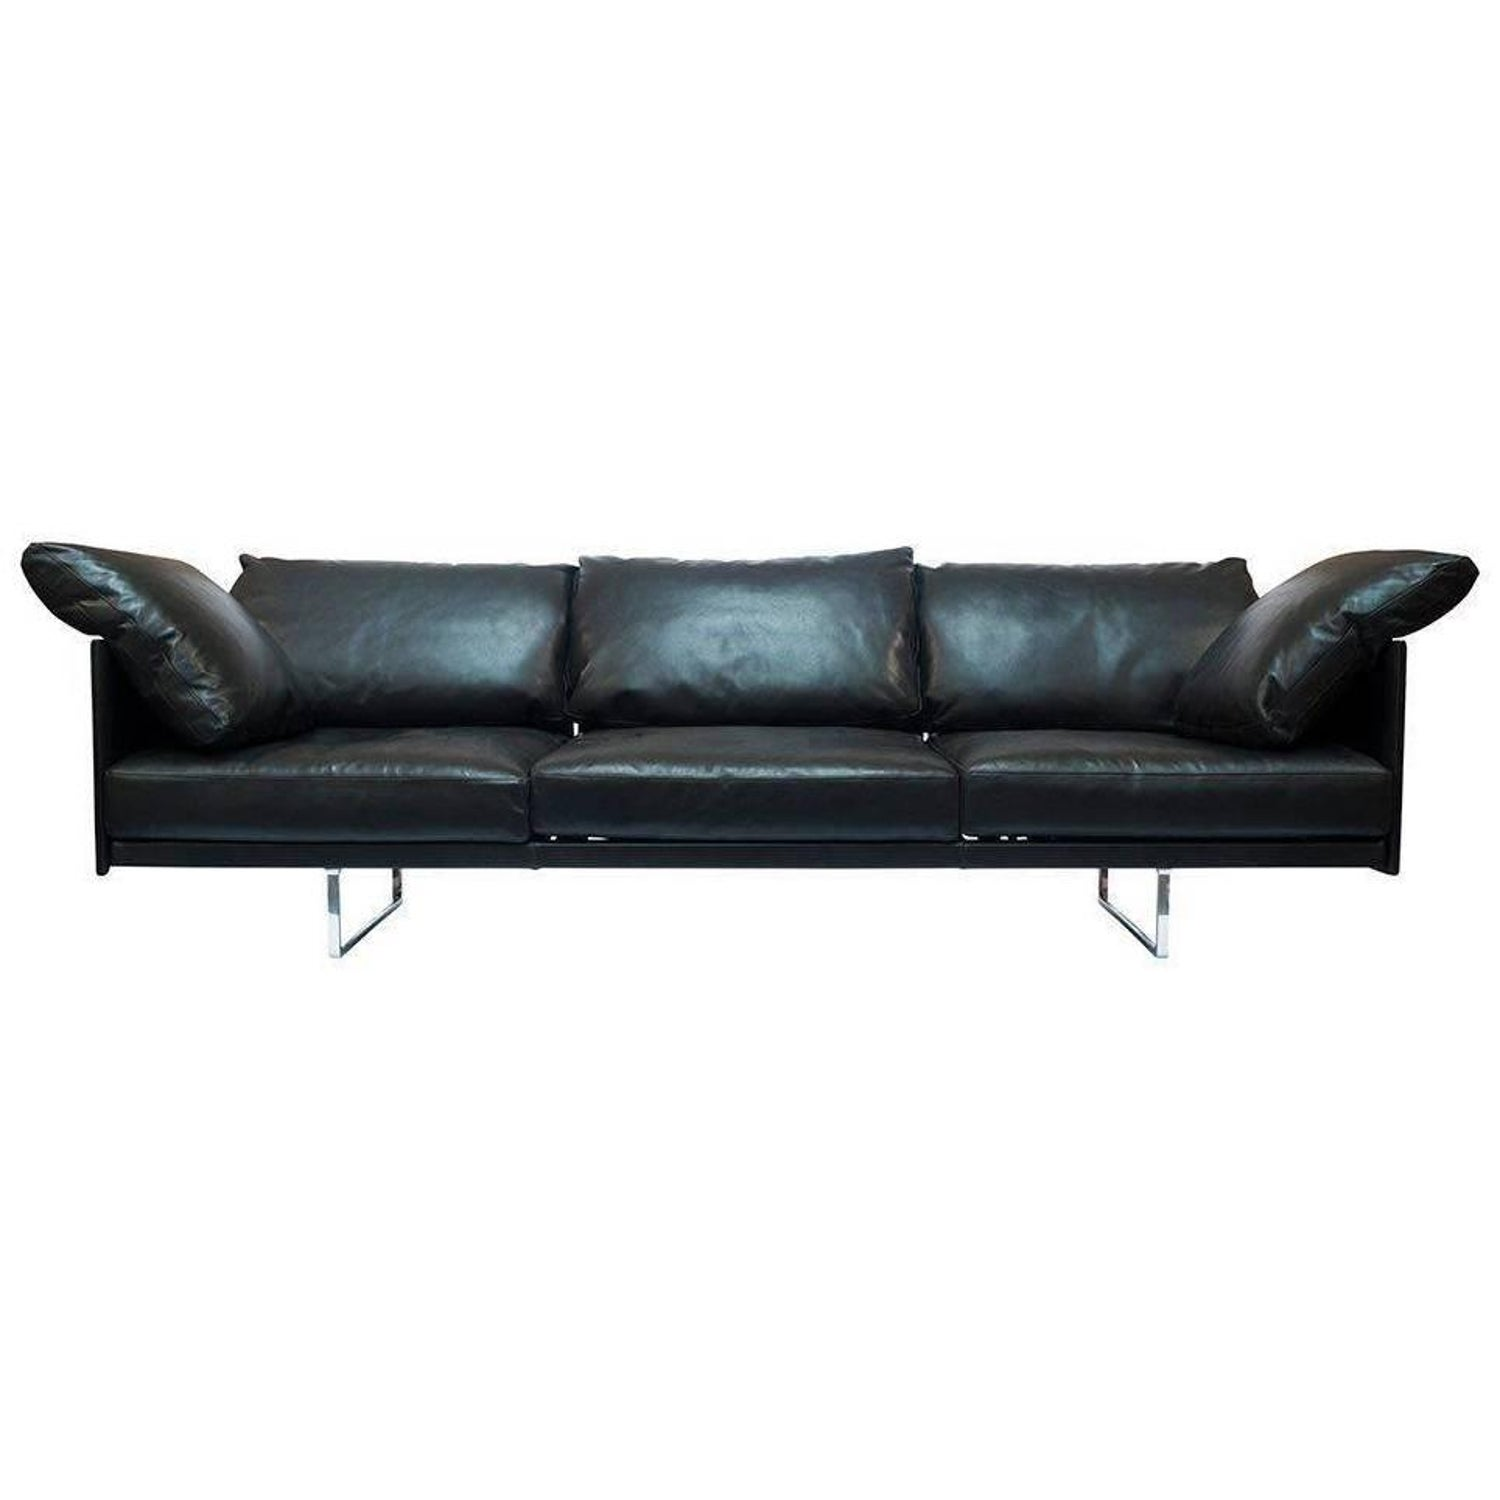 "Sofa ""Toot"" by Manufacturer Cassina in Aluminum and 100% Genuine Leather For Sale at 1stdibs"